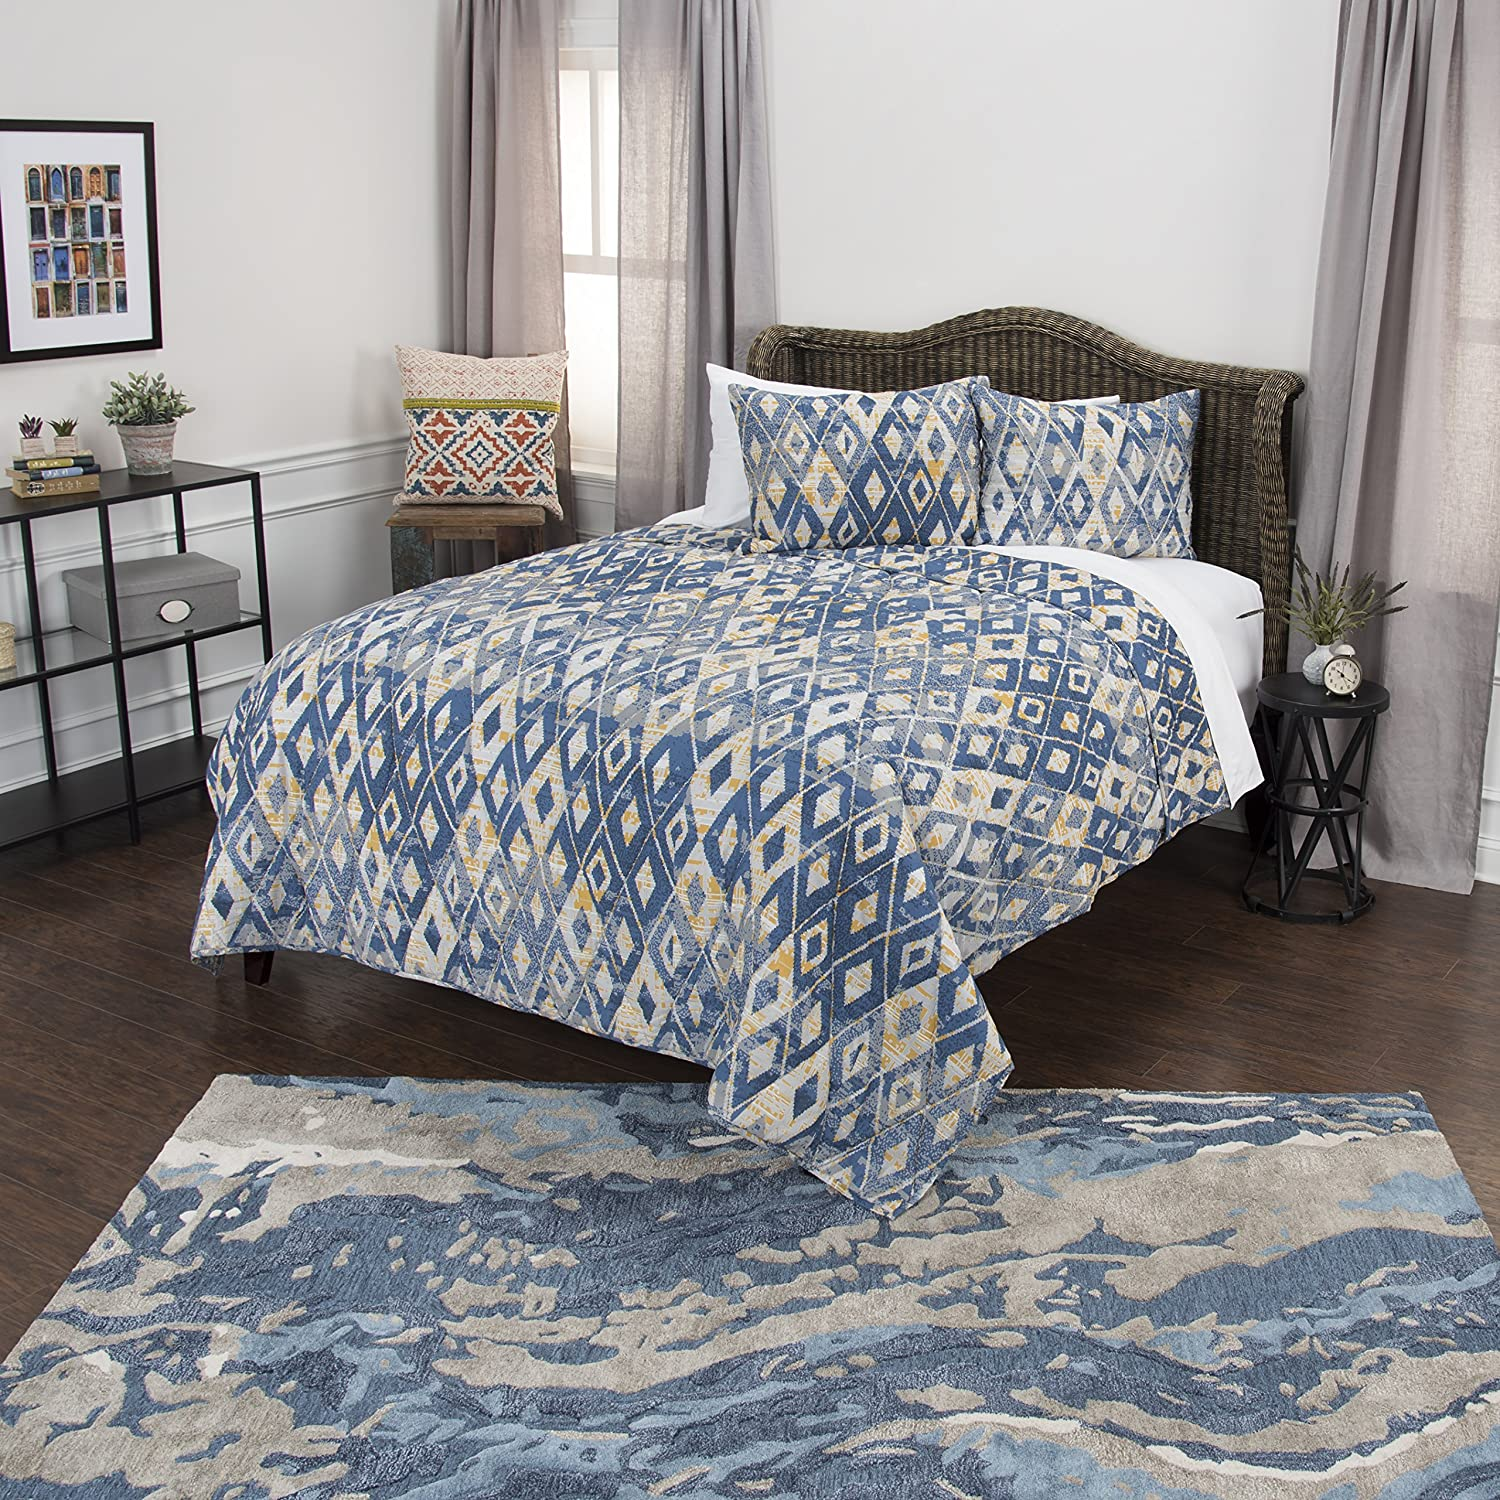 Rizzy Home Maddux Place Asher Geometric 2 Piece Quilt Set, Twin X-Large, Blue